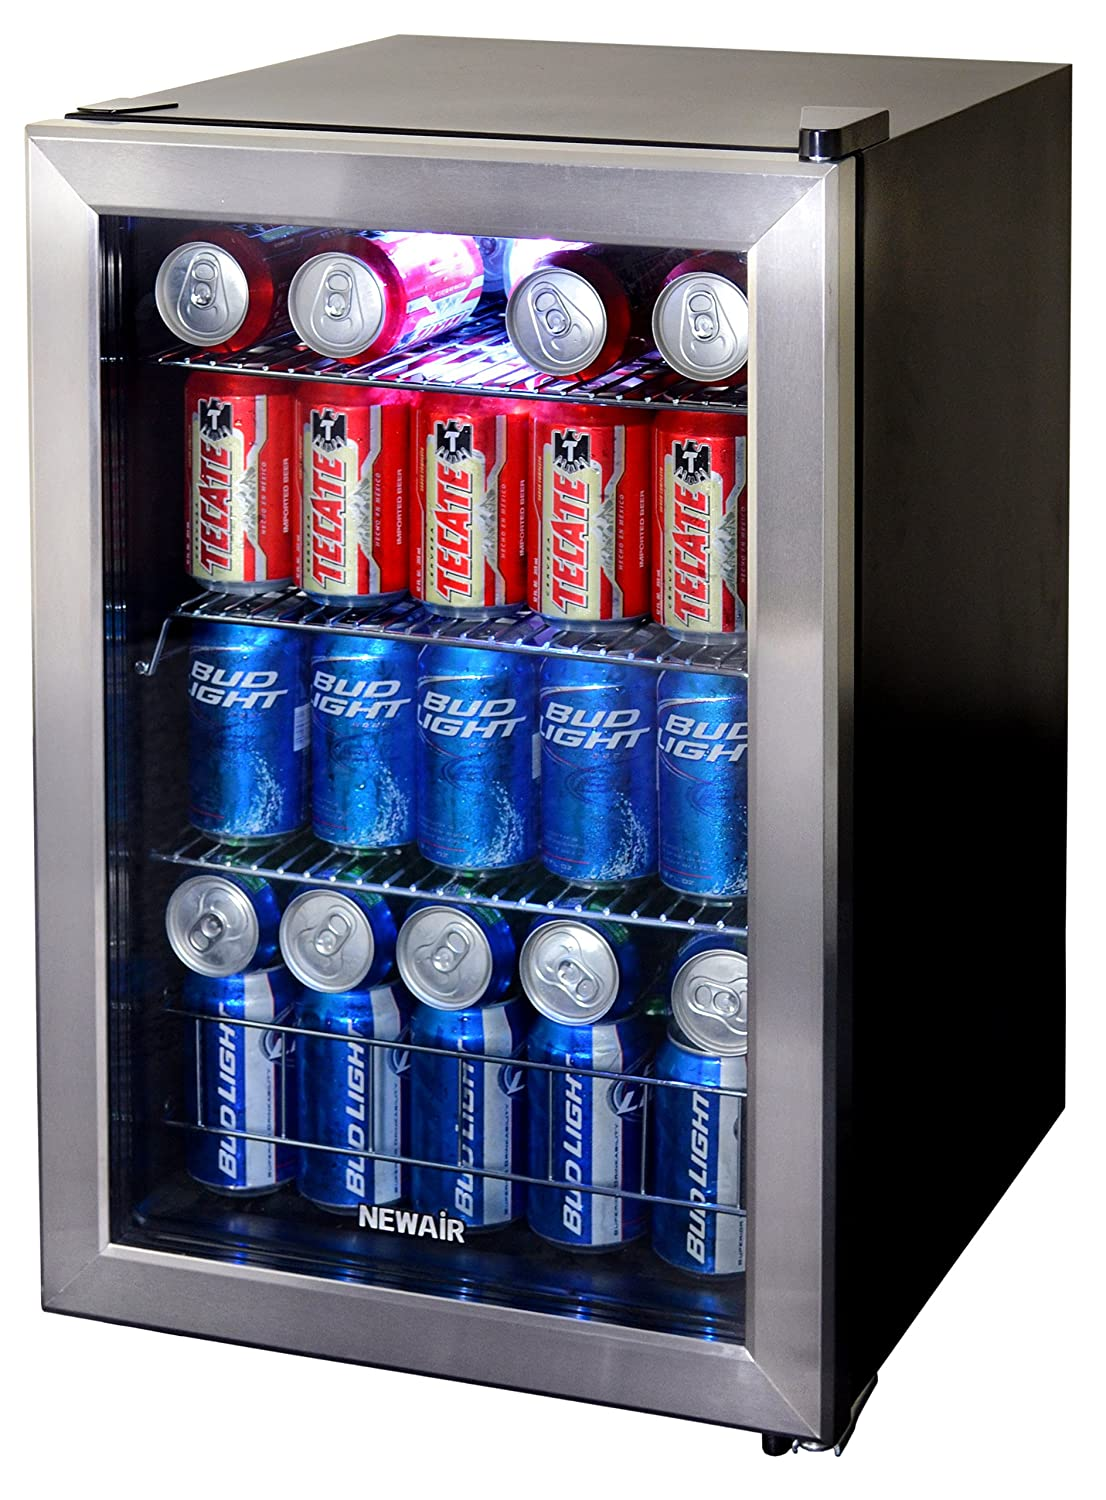 Newair Beverage Cooler And Refrigerator Small Mini Fridge With